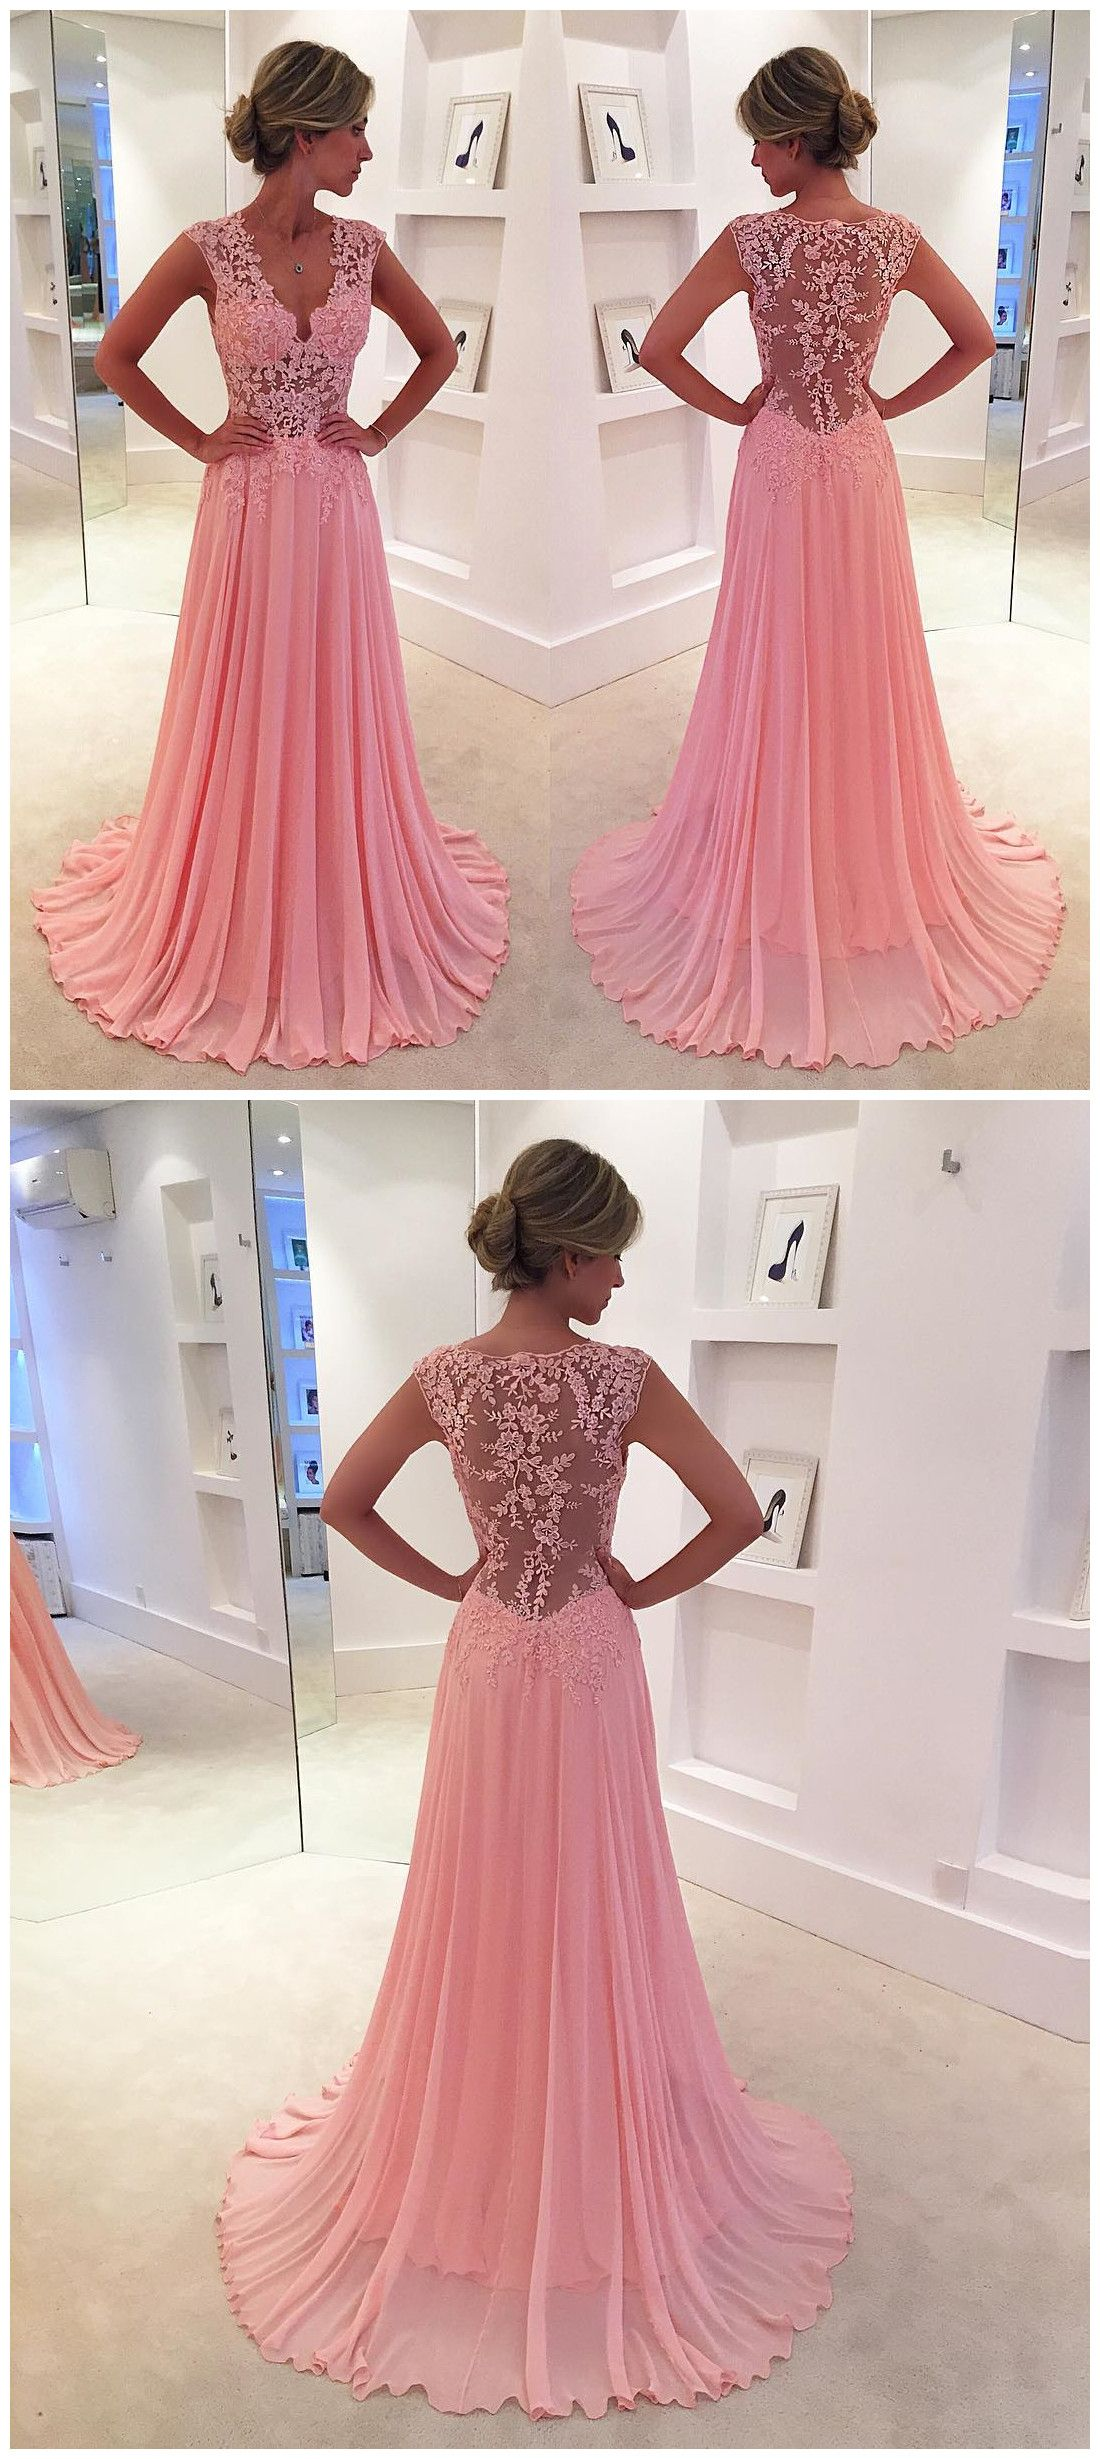 New Arrival Prom Dress,Modest Prom Dress, lace appliques,long prom ...